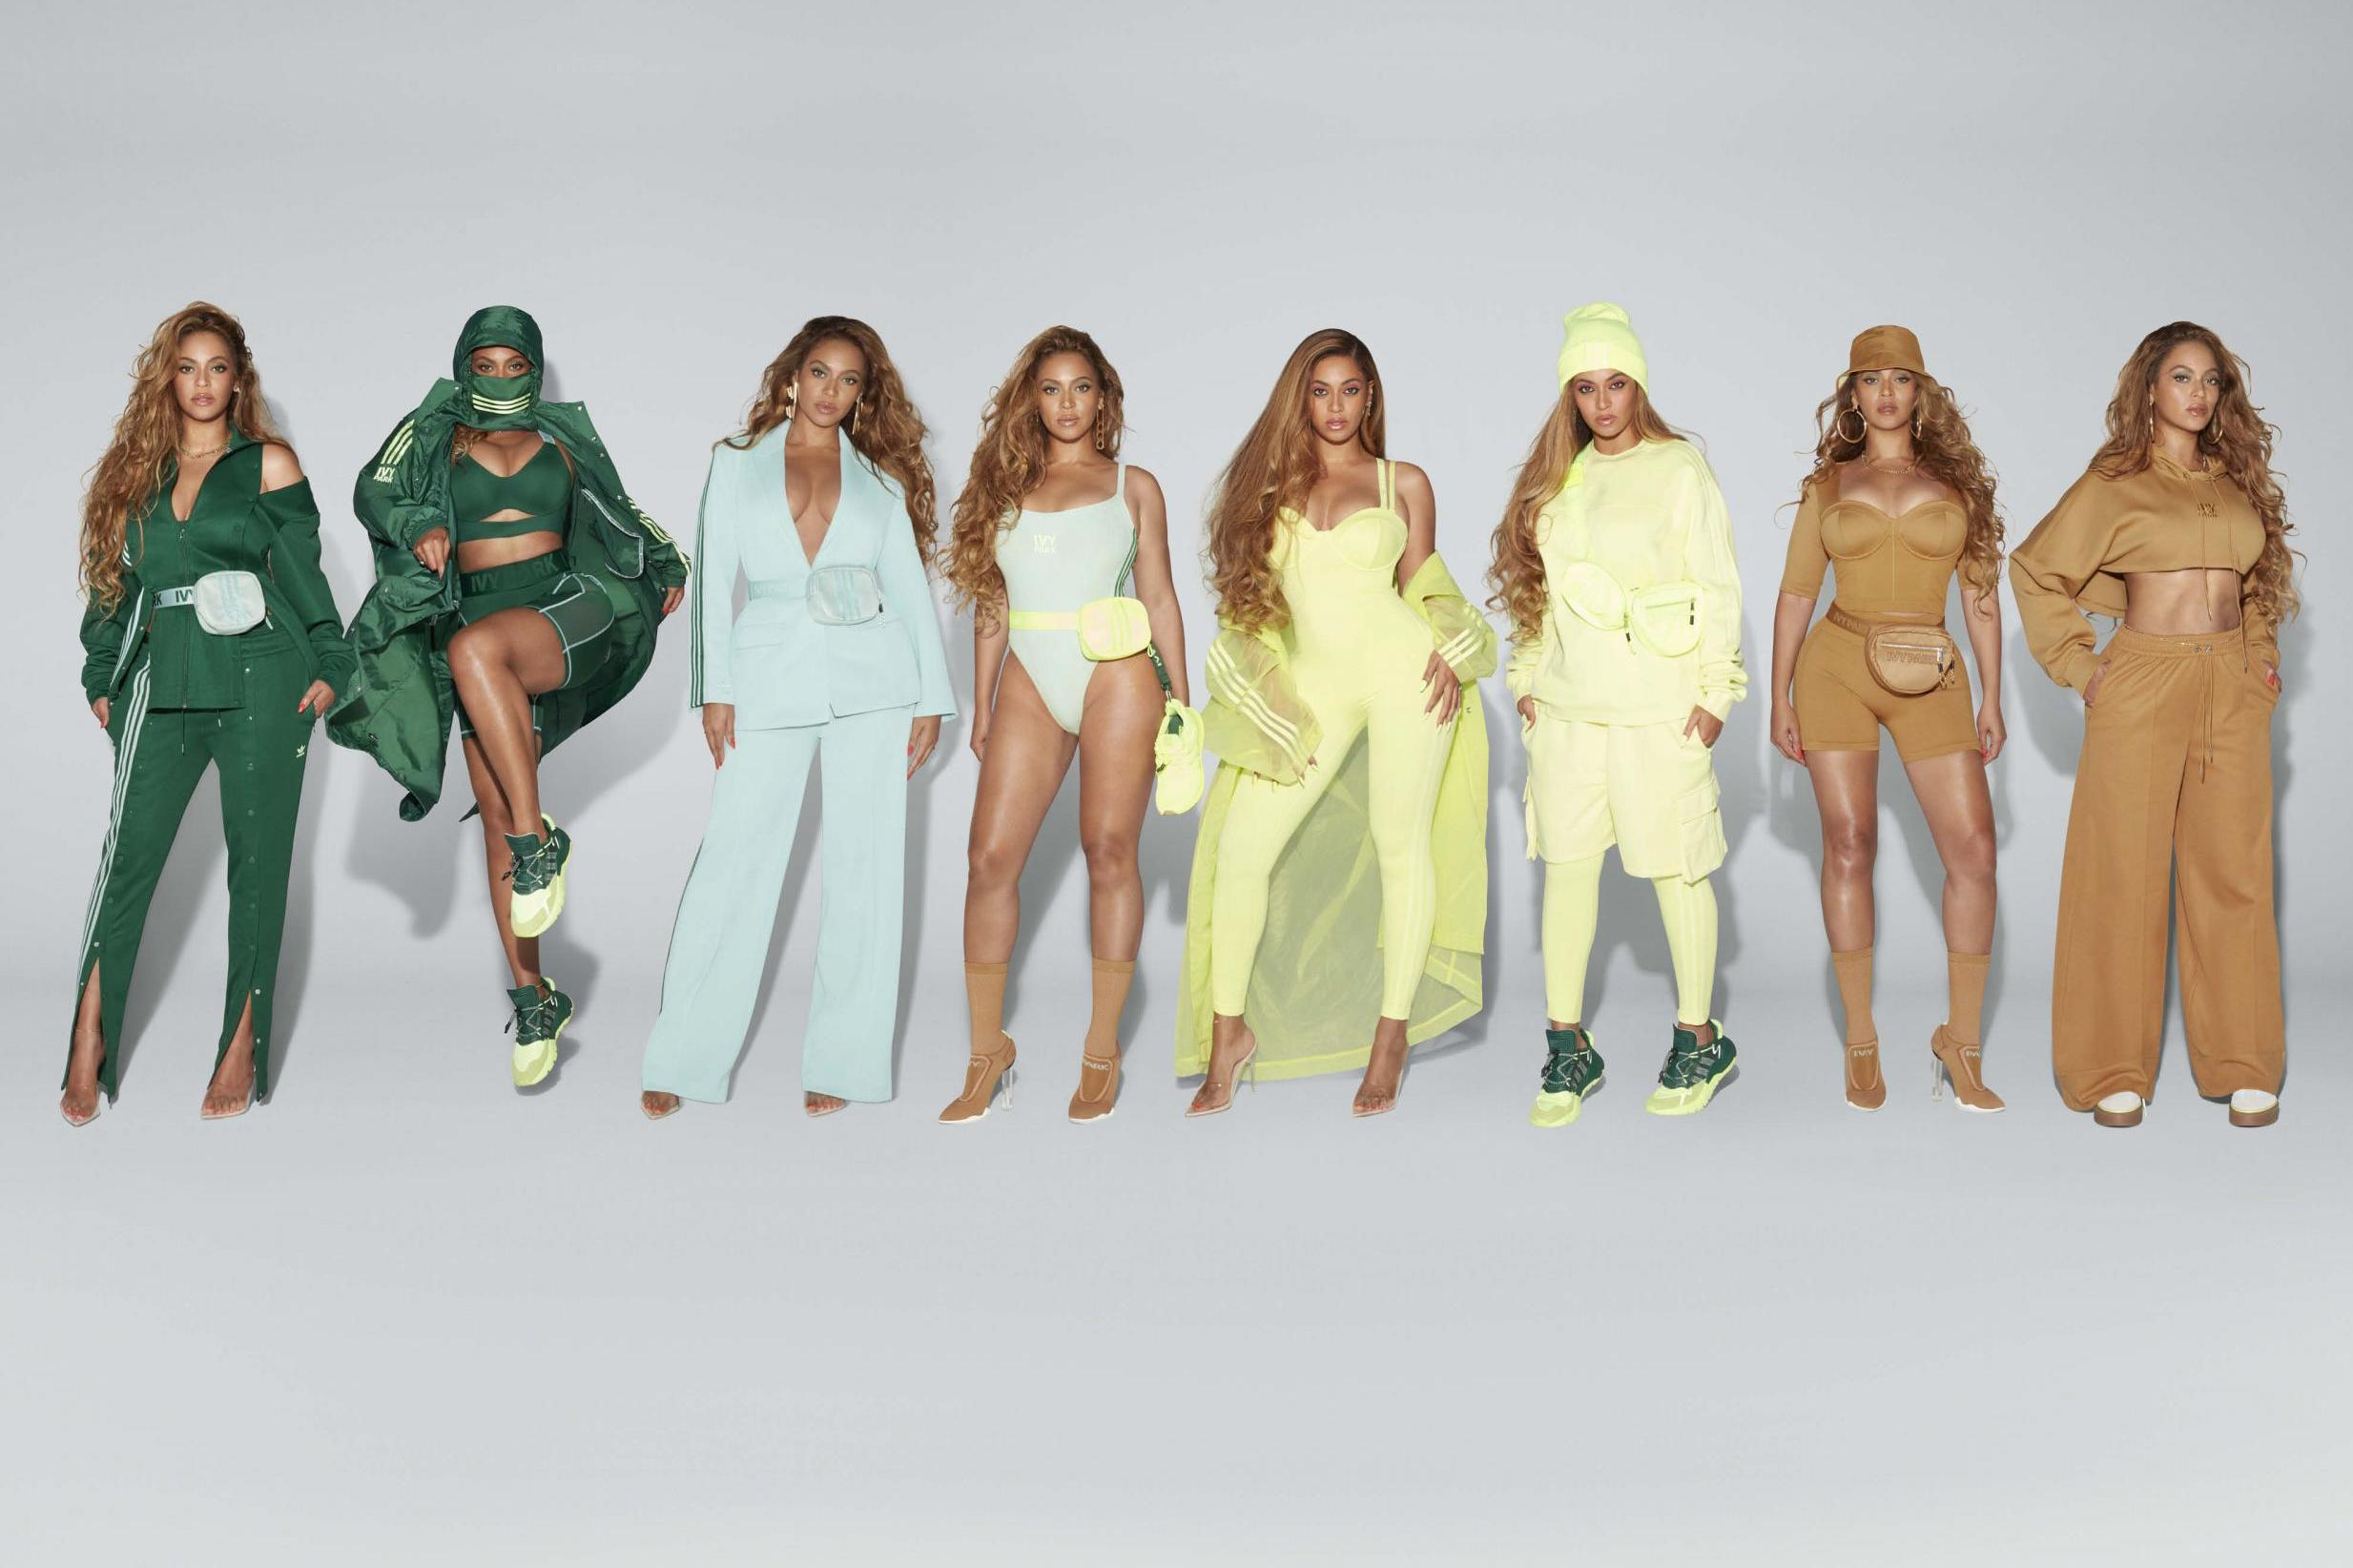 Beyonce Launches Ivy Park Collection